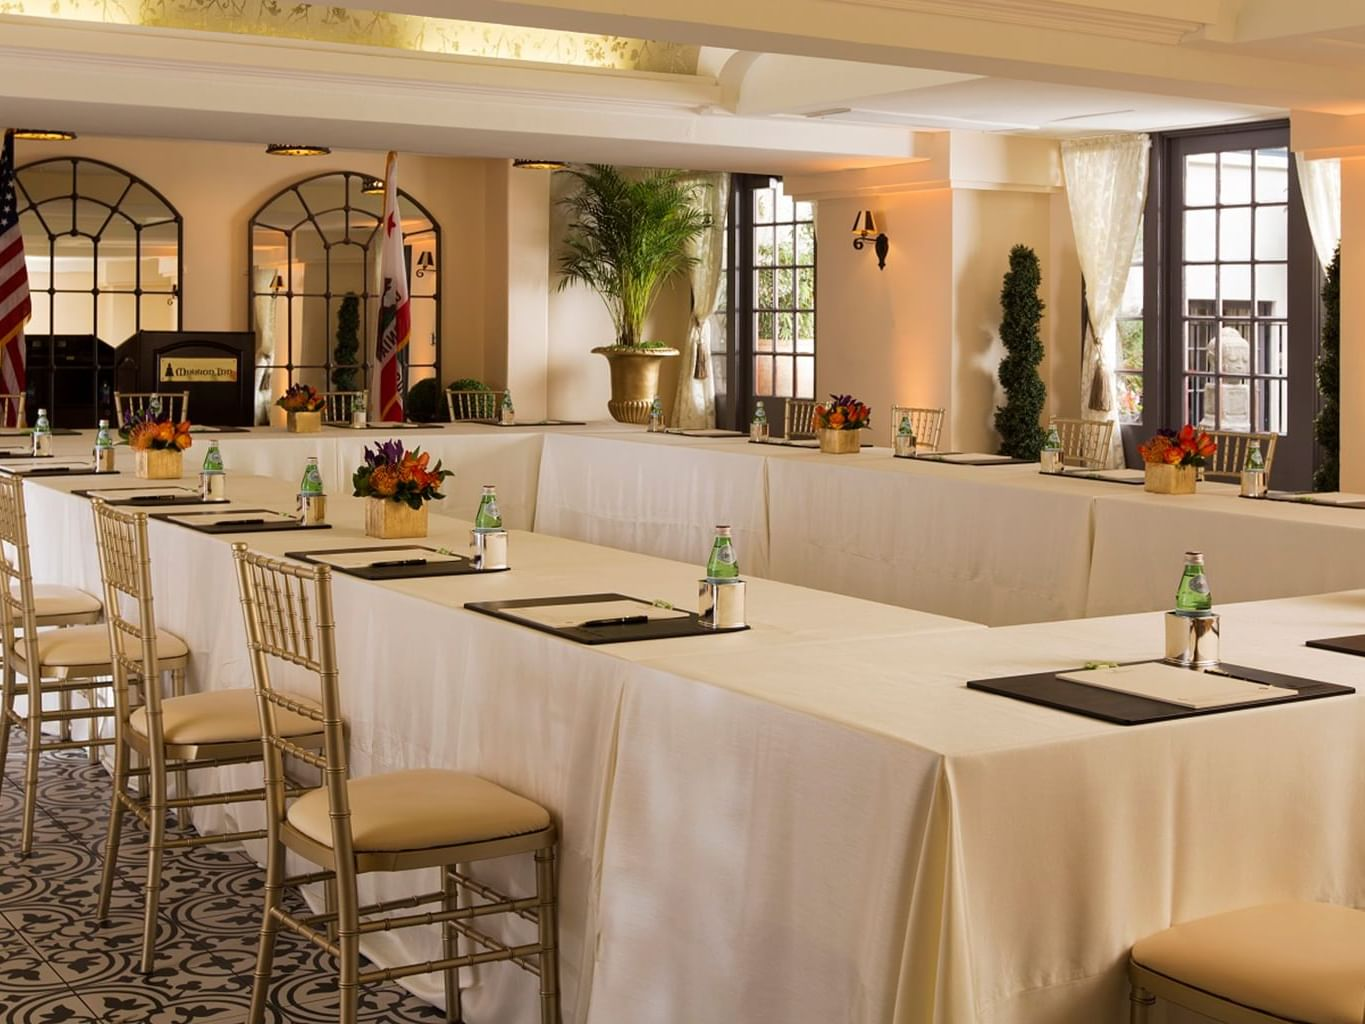 Mission Inn ballroom with rectangular table and chairs